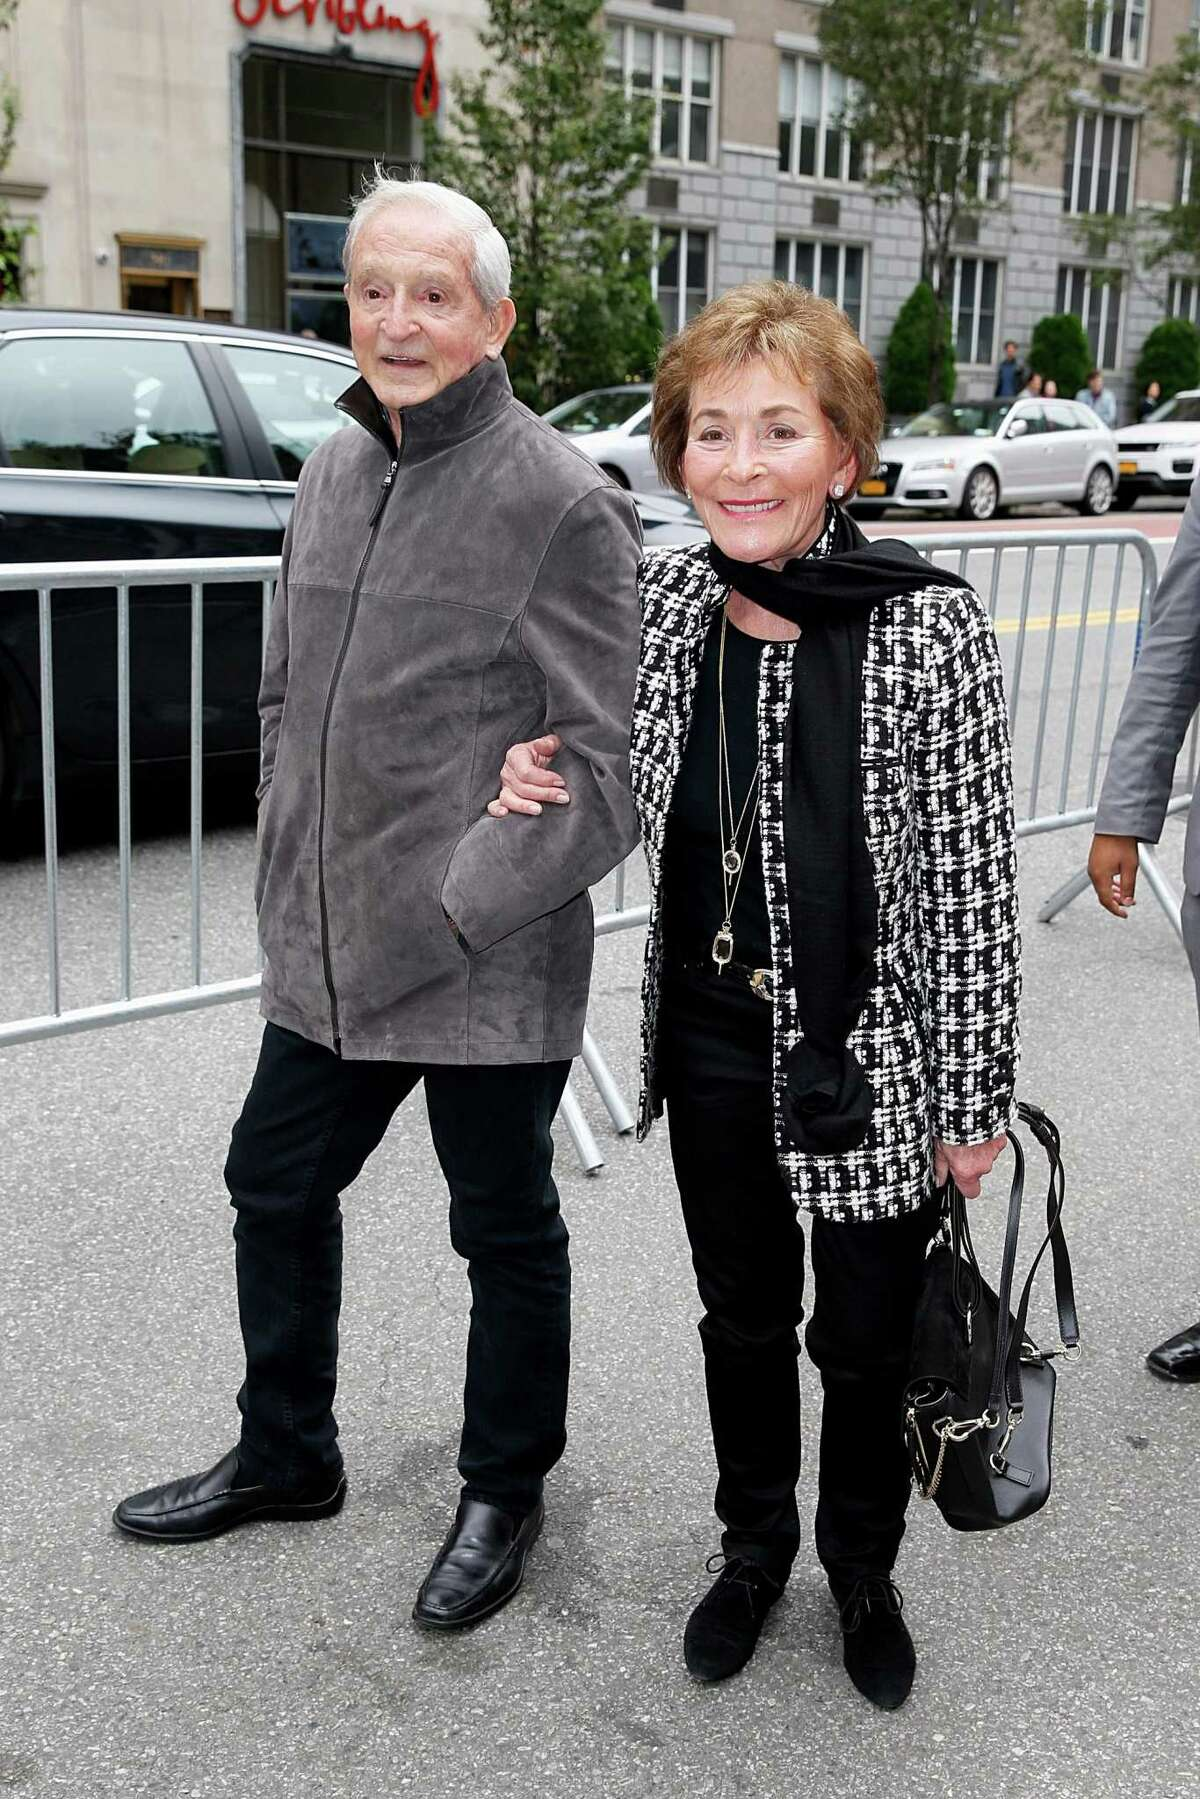 Judge Judy Sheindlin and husband Jerry Sheindlin are seen on October 14, 2018 in New York City.